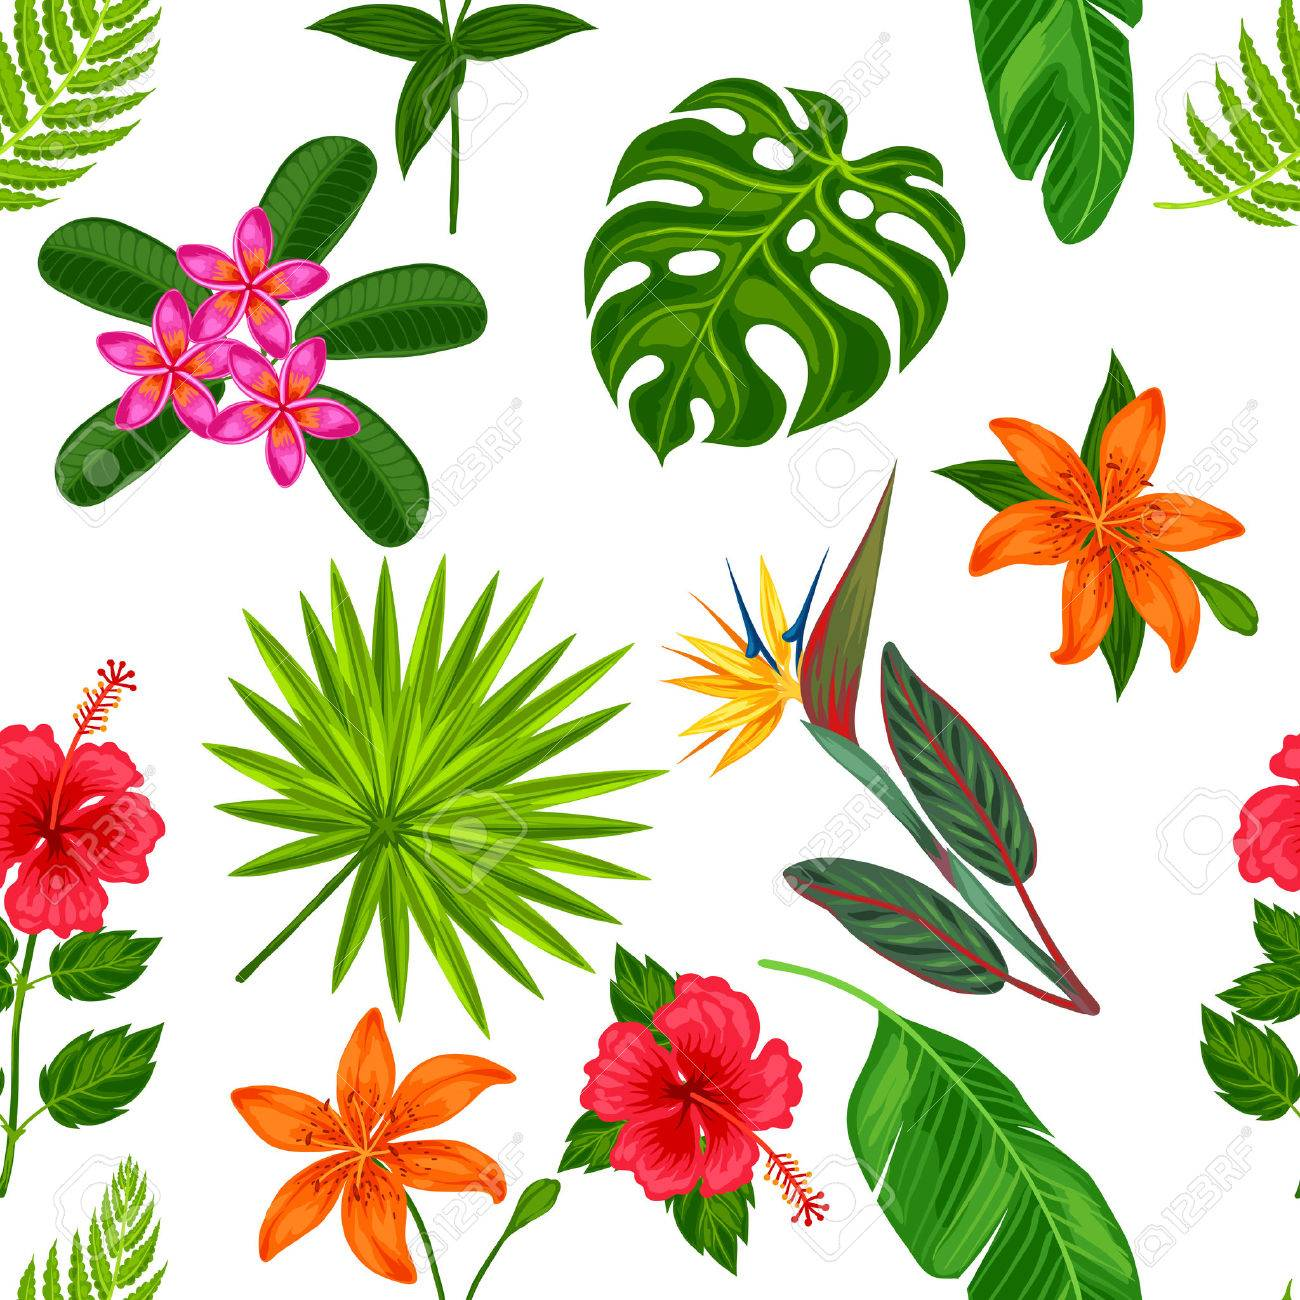 Seamless Pattern With Tropical Plants Leaves And Flowers Background Royalty Free Cliparts Vectors And Stock Illustration Image 55229909 See more ideas about tropical, tropical leaves, leaves. seamless pattern with tropical plants leaves and flowers background